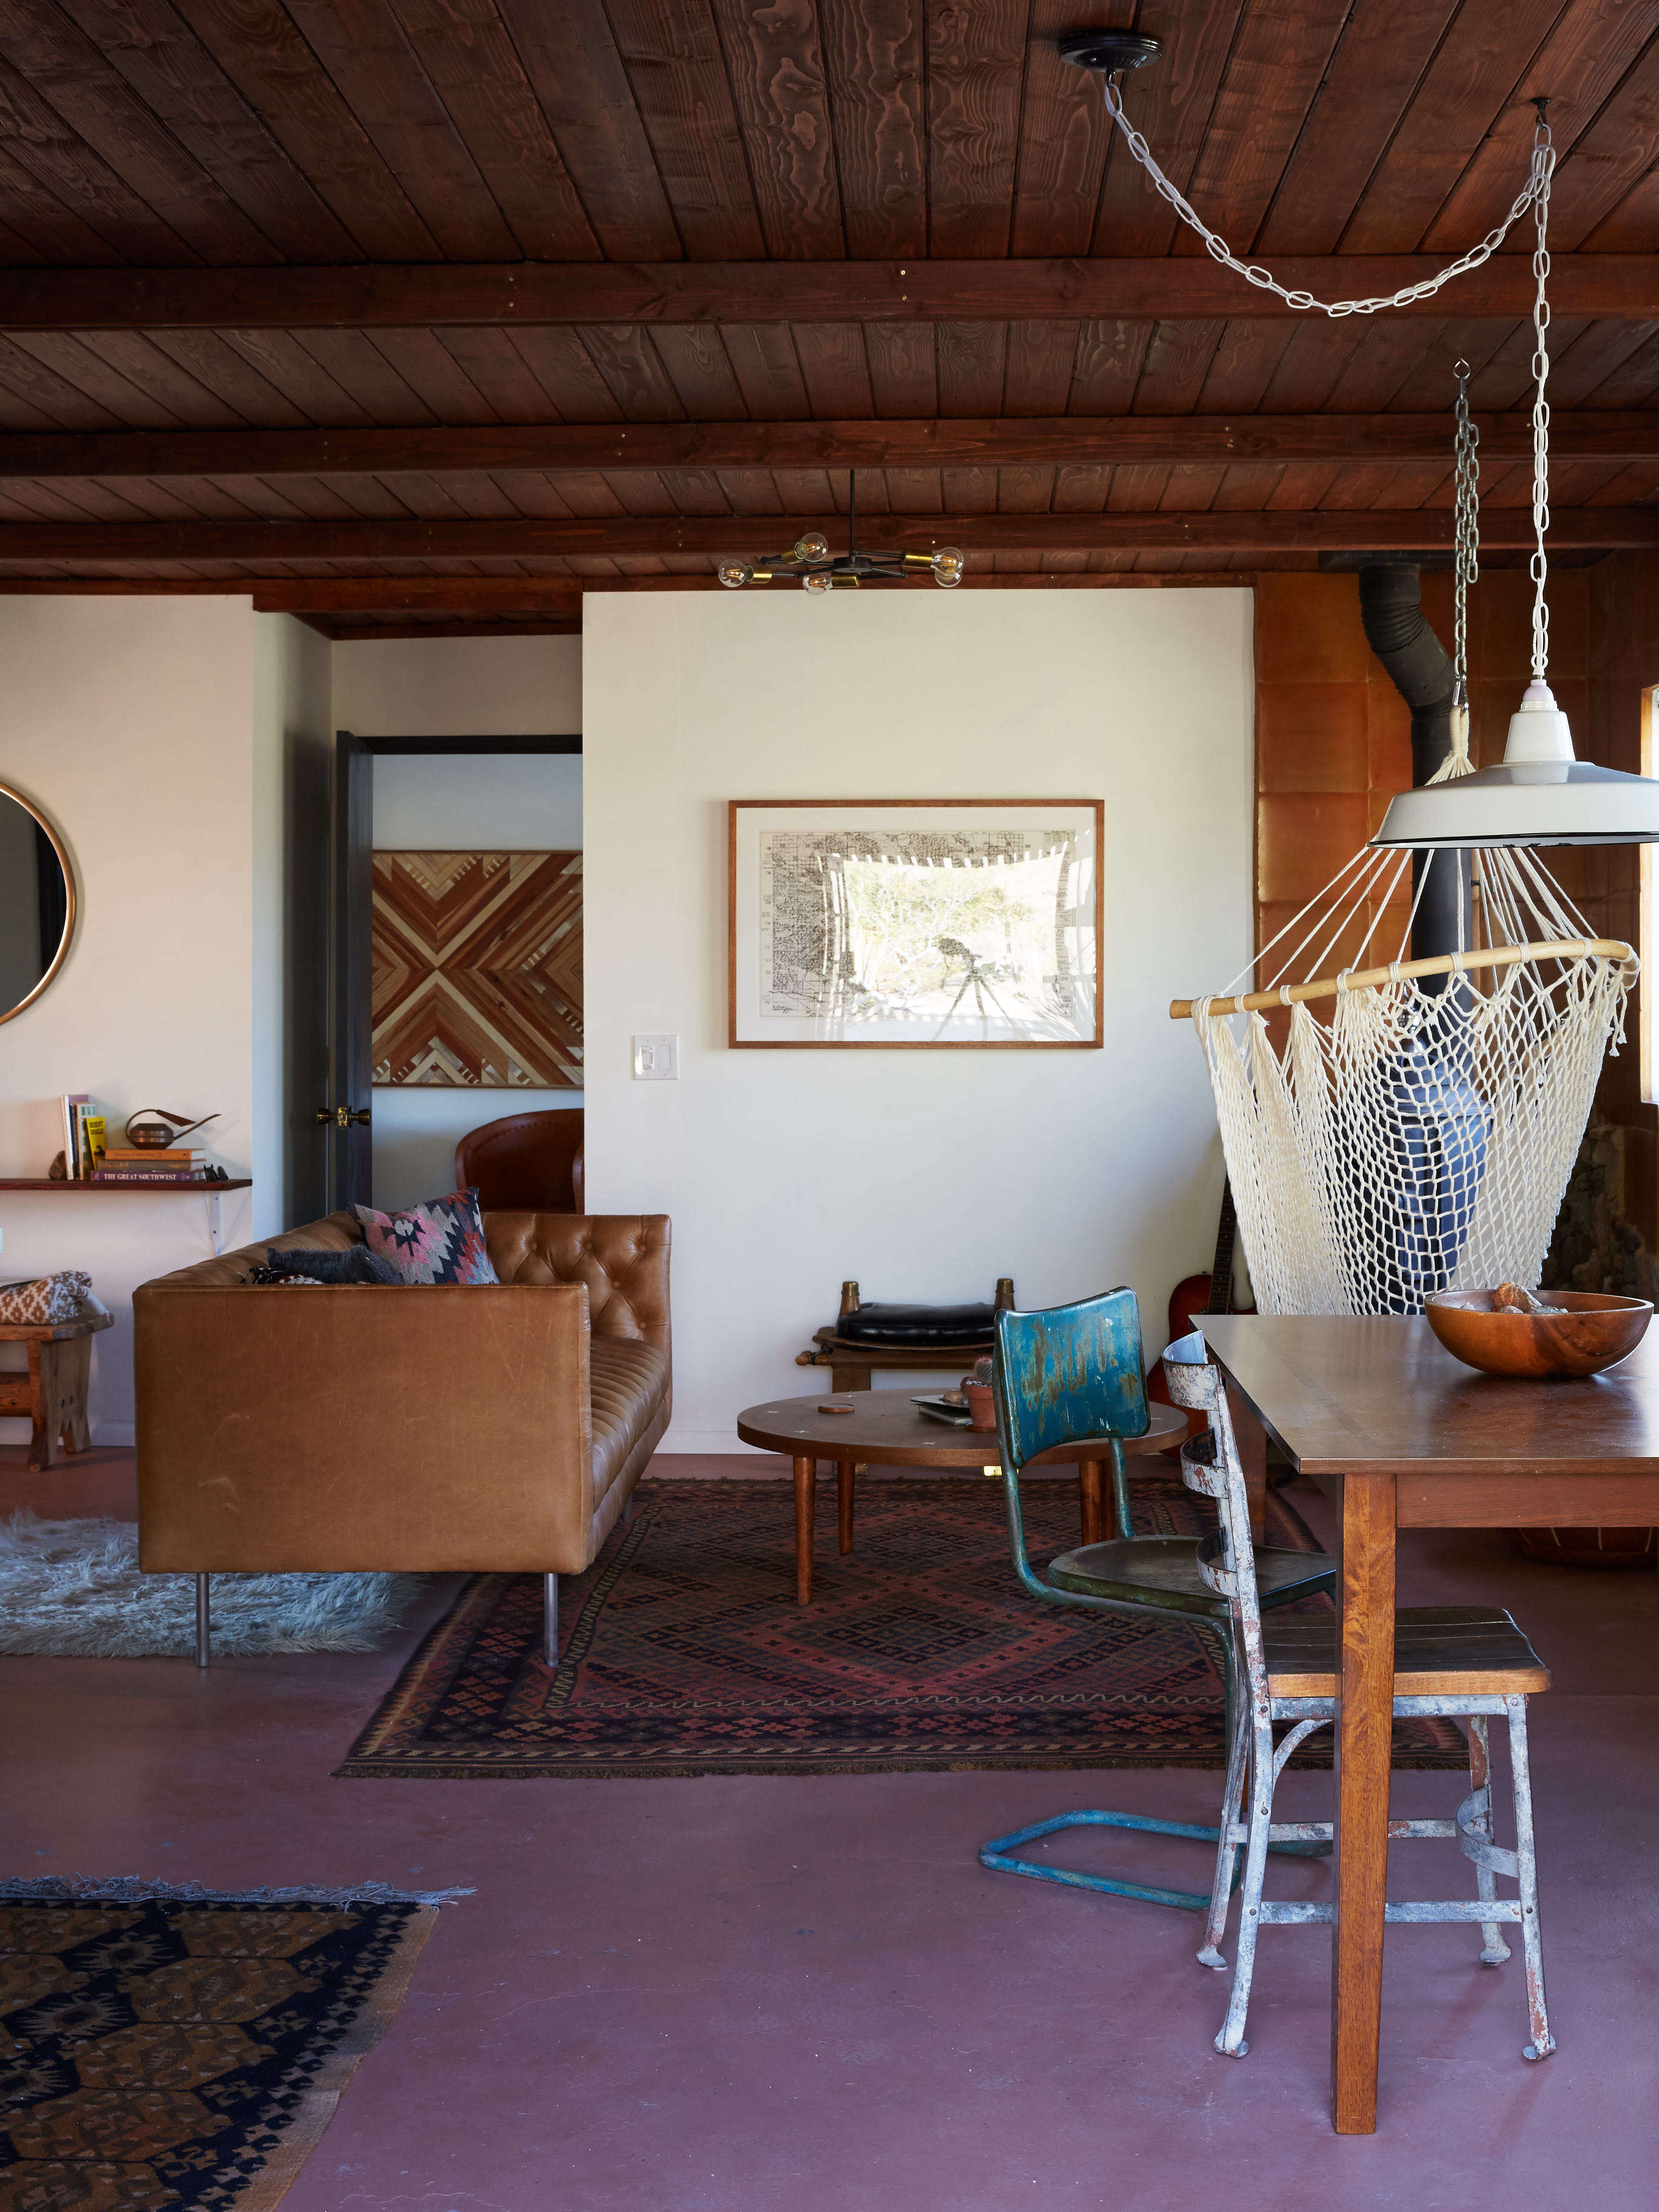 joshua tree casita airbnb living room in desert colors with hanging swing and painted concrete floor, kate sears photo